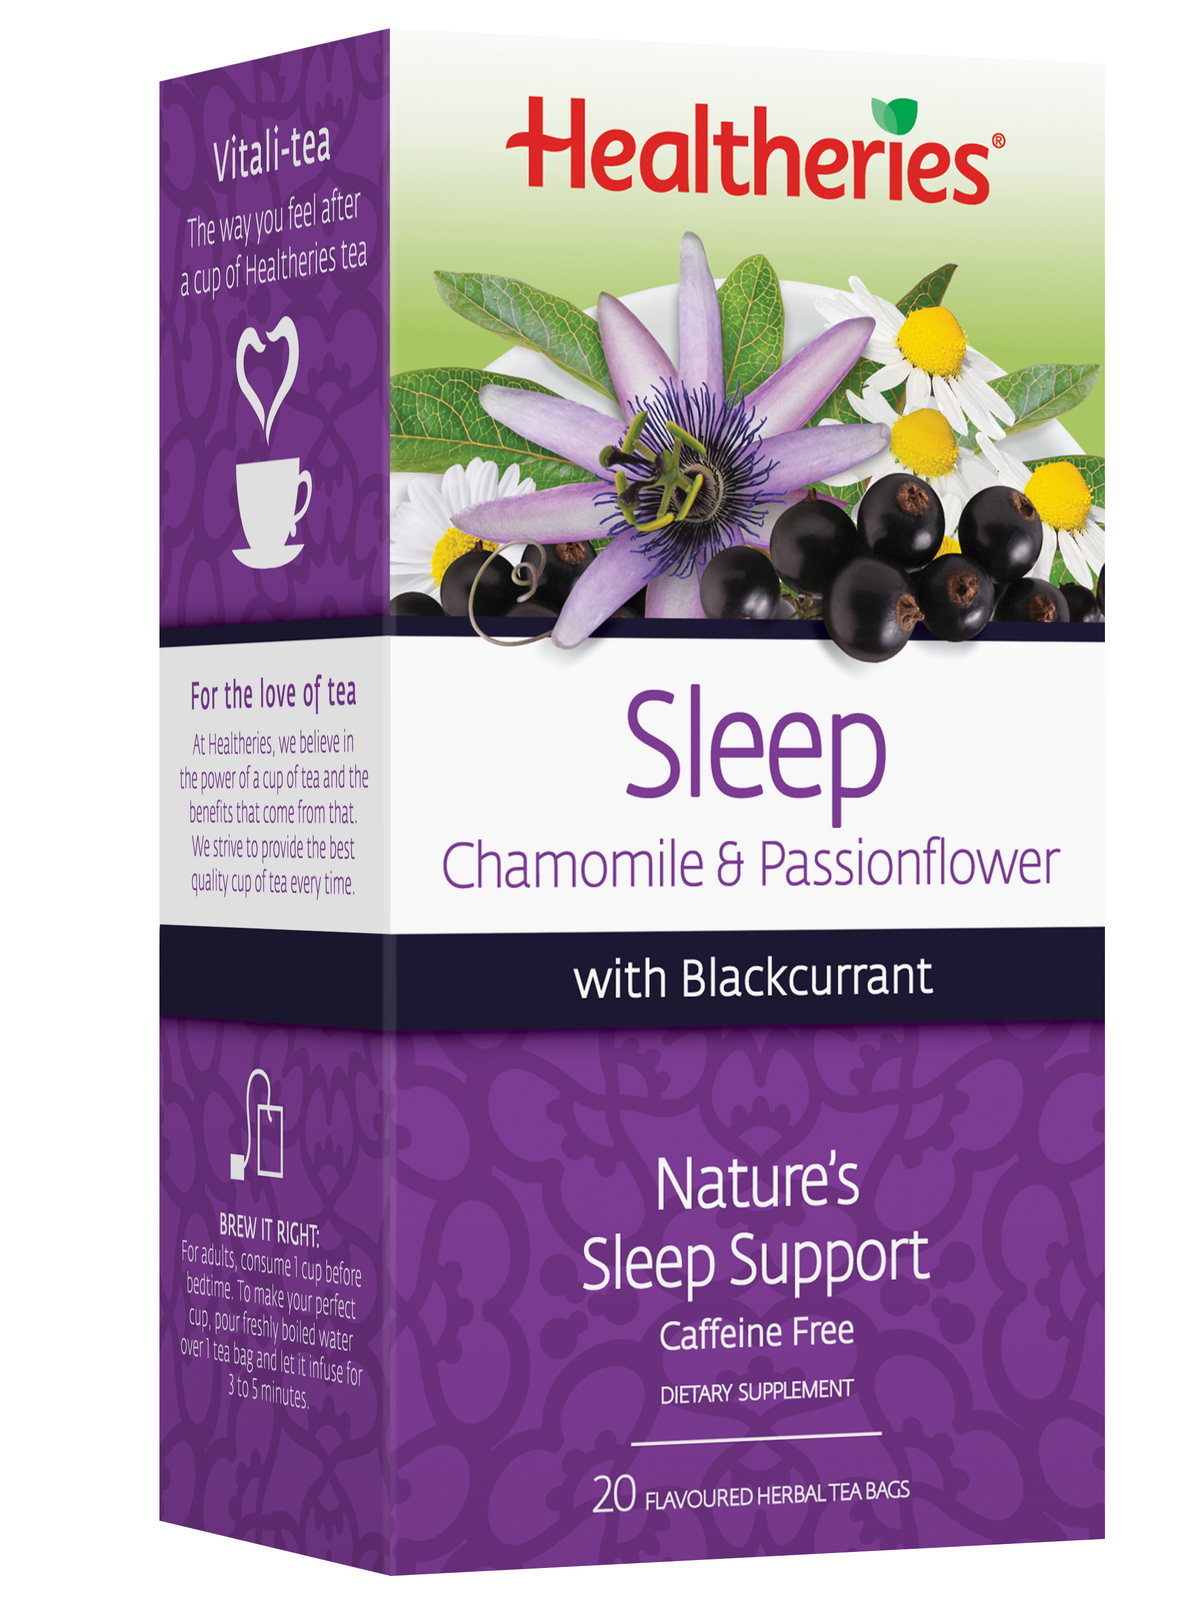 Healtheries Sleep with Blackcurrant Tea (Pack of 20) image